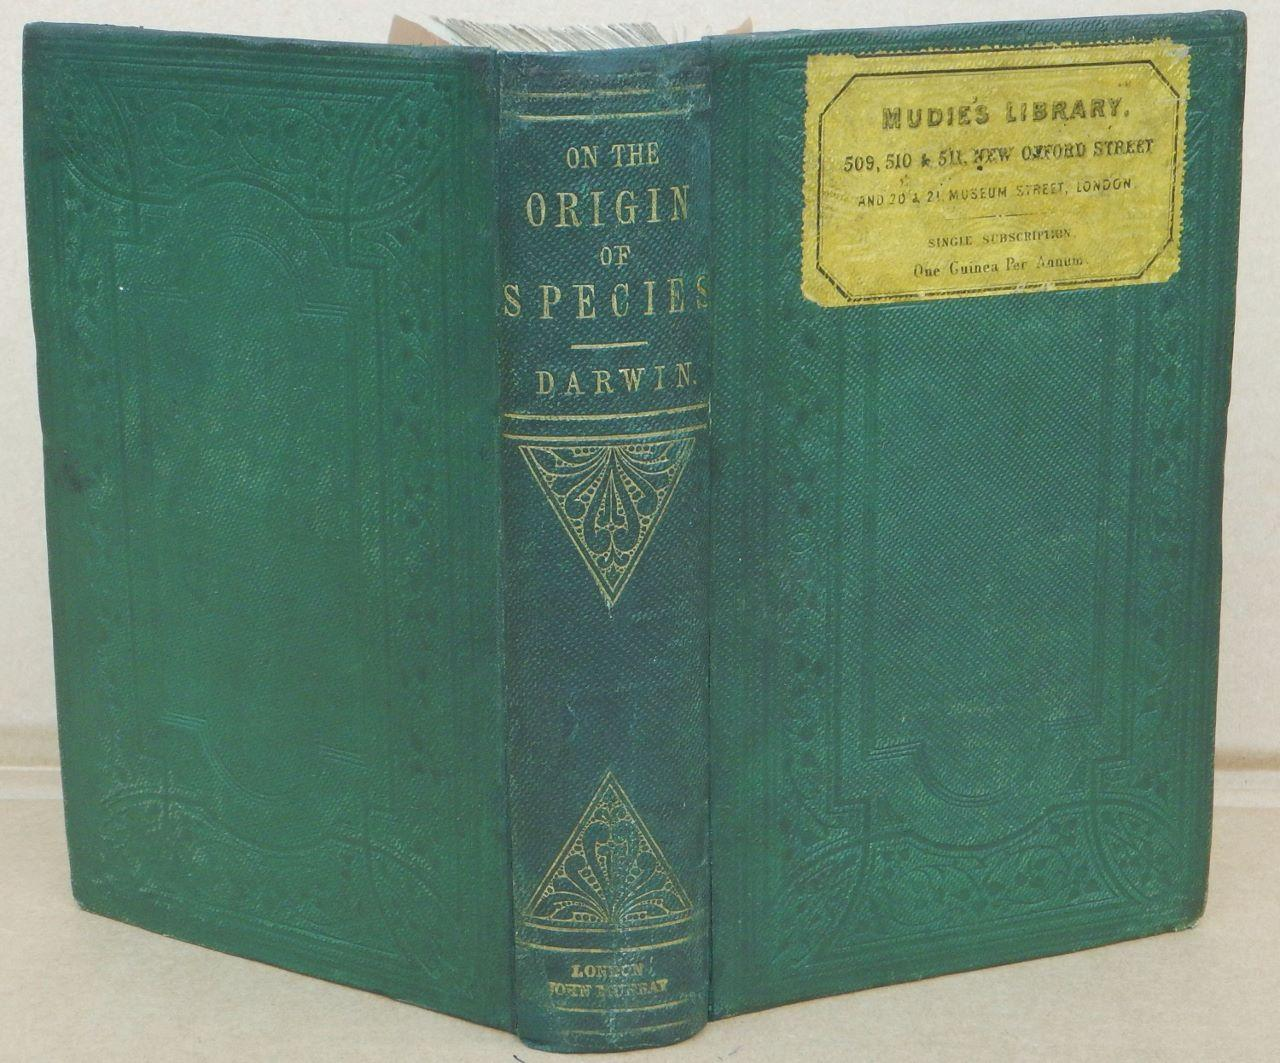 an essay arguing the points of charles darwin on the origin of species - on the origin of species by means of natural selection, or the preservation of favoured races in the struggle for life, usually shortened to the origin of species, is the full title of charles darwin's book, first published in 1859, in which darwin formalized what we know today as the theory of evolution.